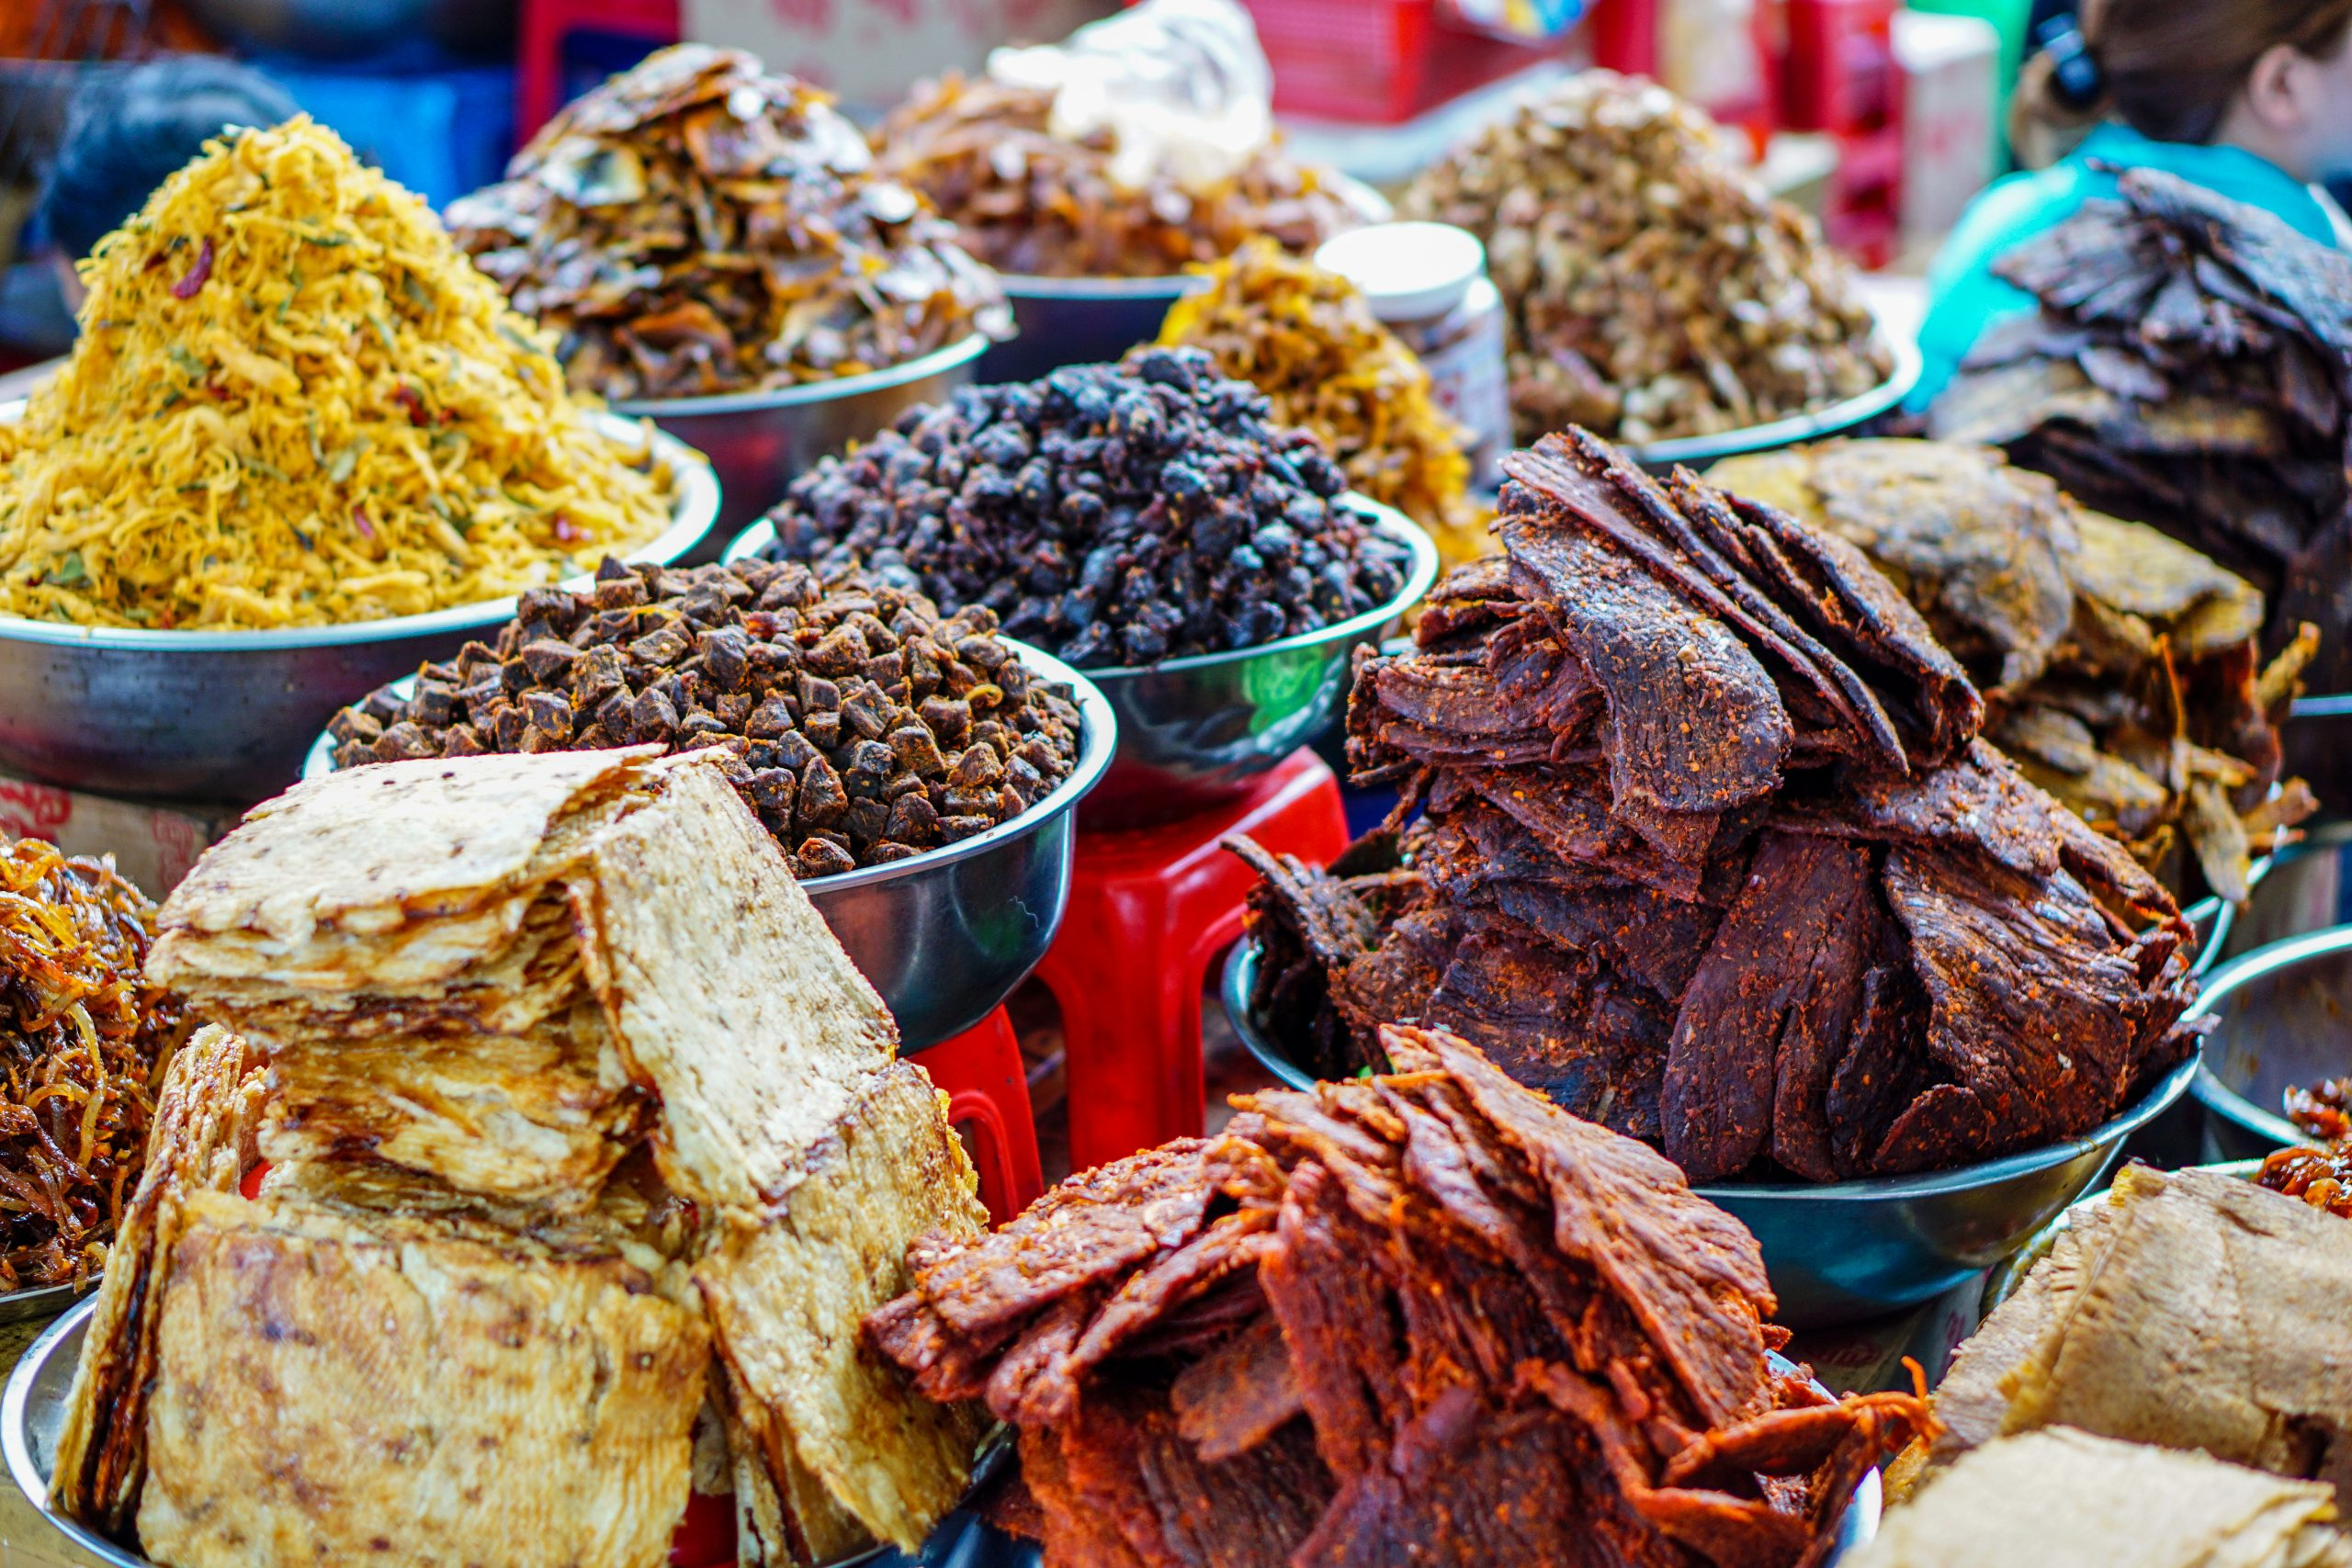 Visit The Market Of Da Nang During Your Market And Cooking Experience